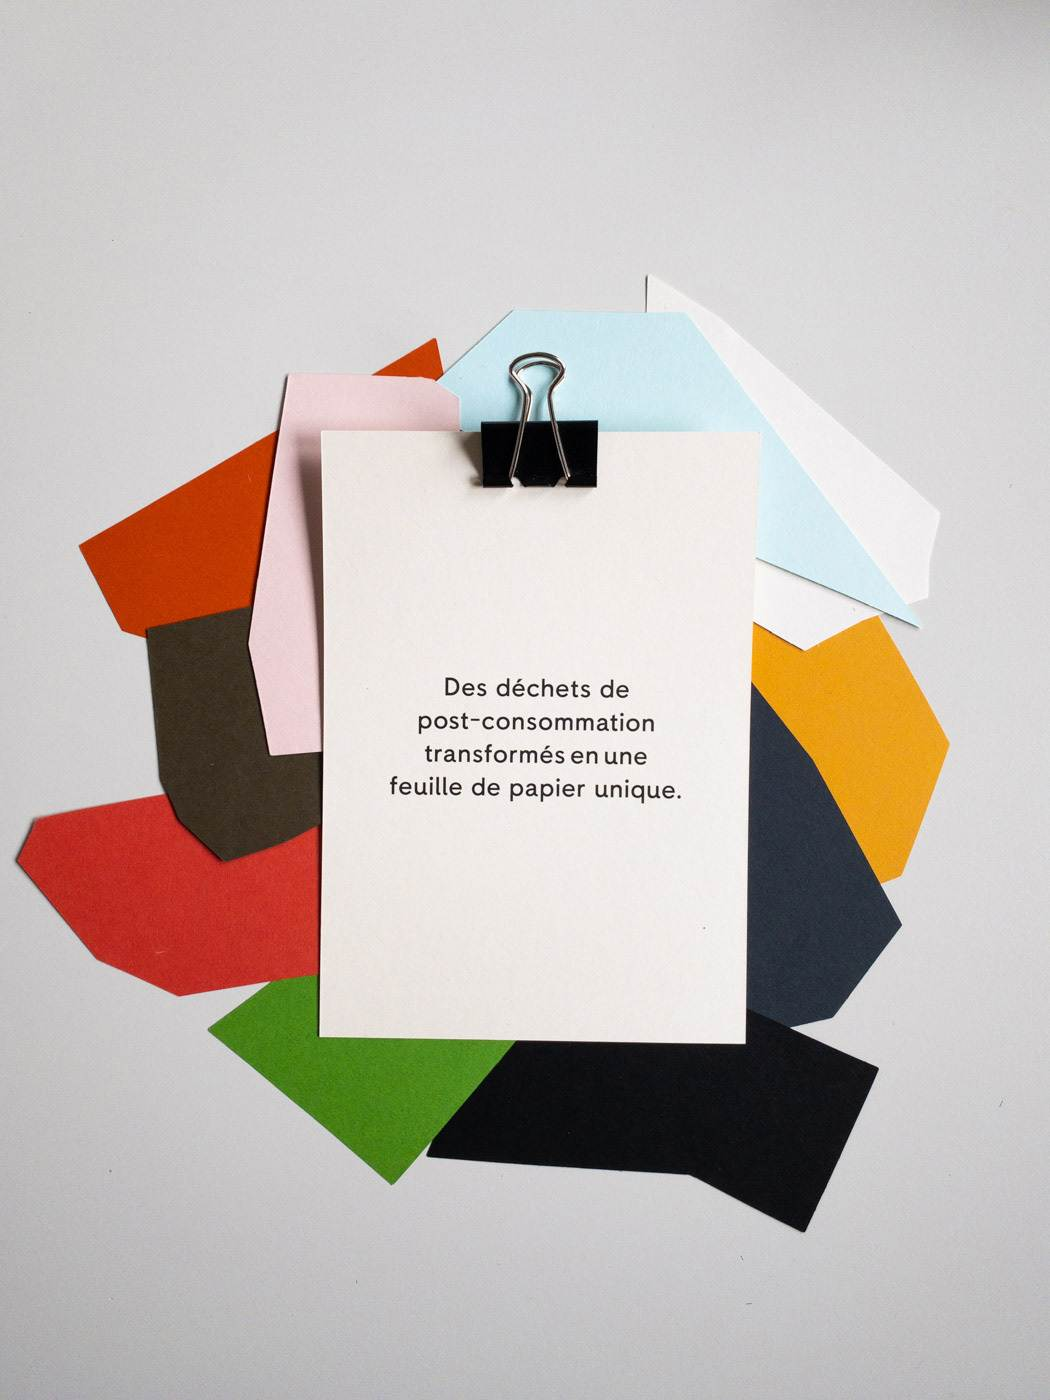 print-responsable-papier-cup-cycled-environnement